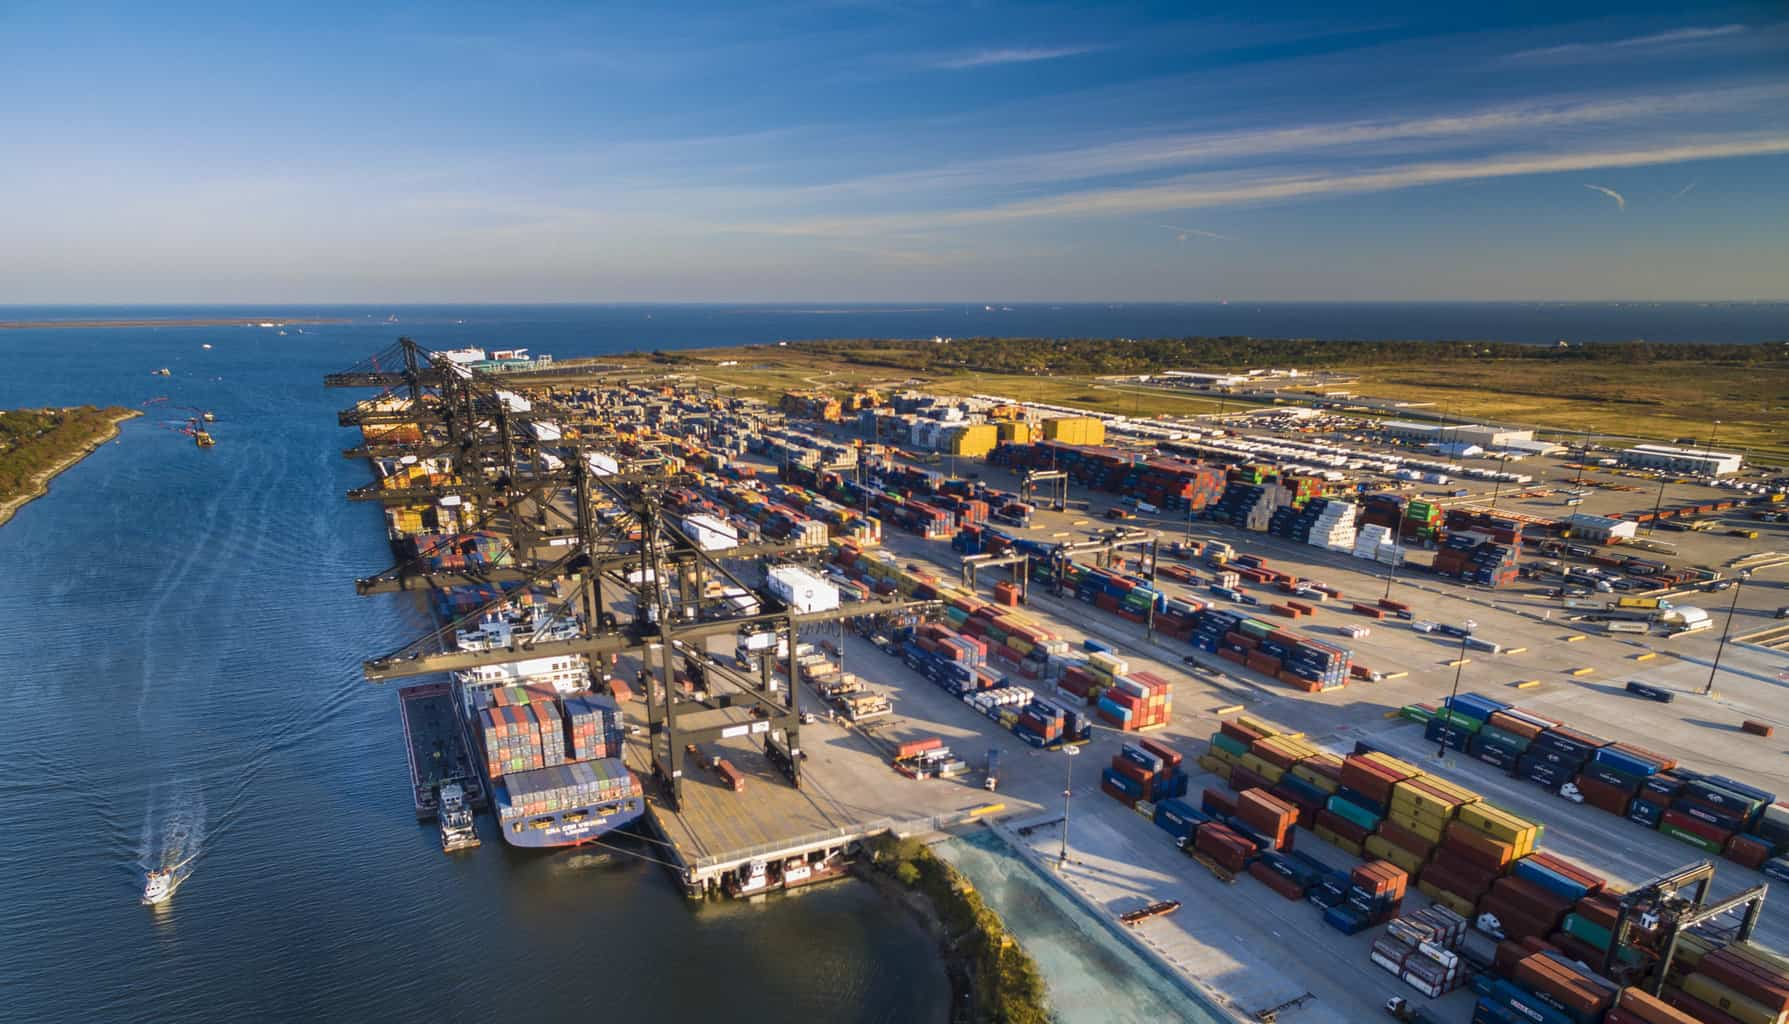 Photo of Port Report: Container ship industry gets capacity discipline, setting up tighter 2019